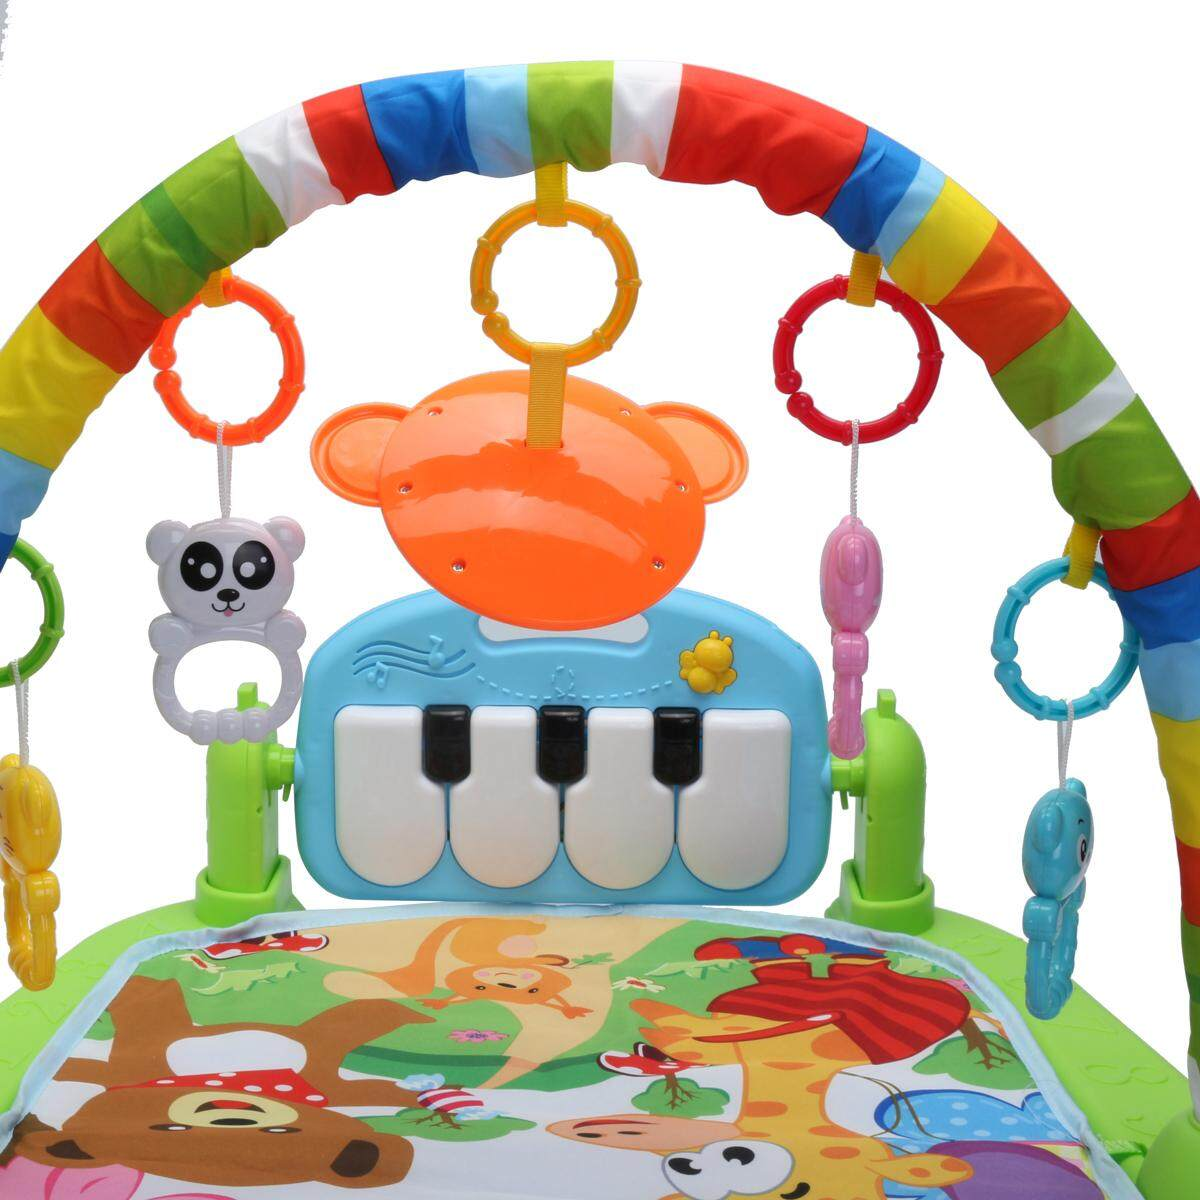 ... Baby Music Play Mat 3 in 1 Educational Rack Toys Keyboard Infant Fitness Carpet - intl ...